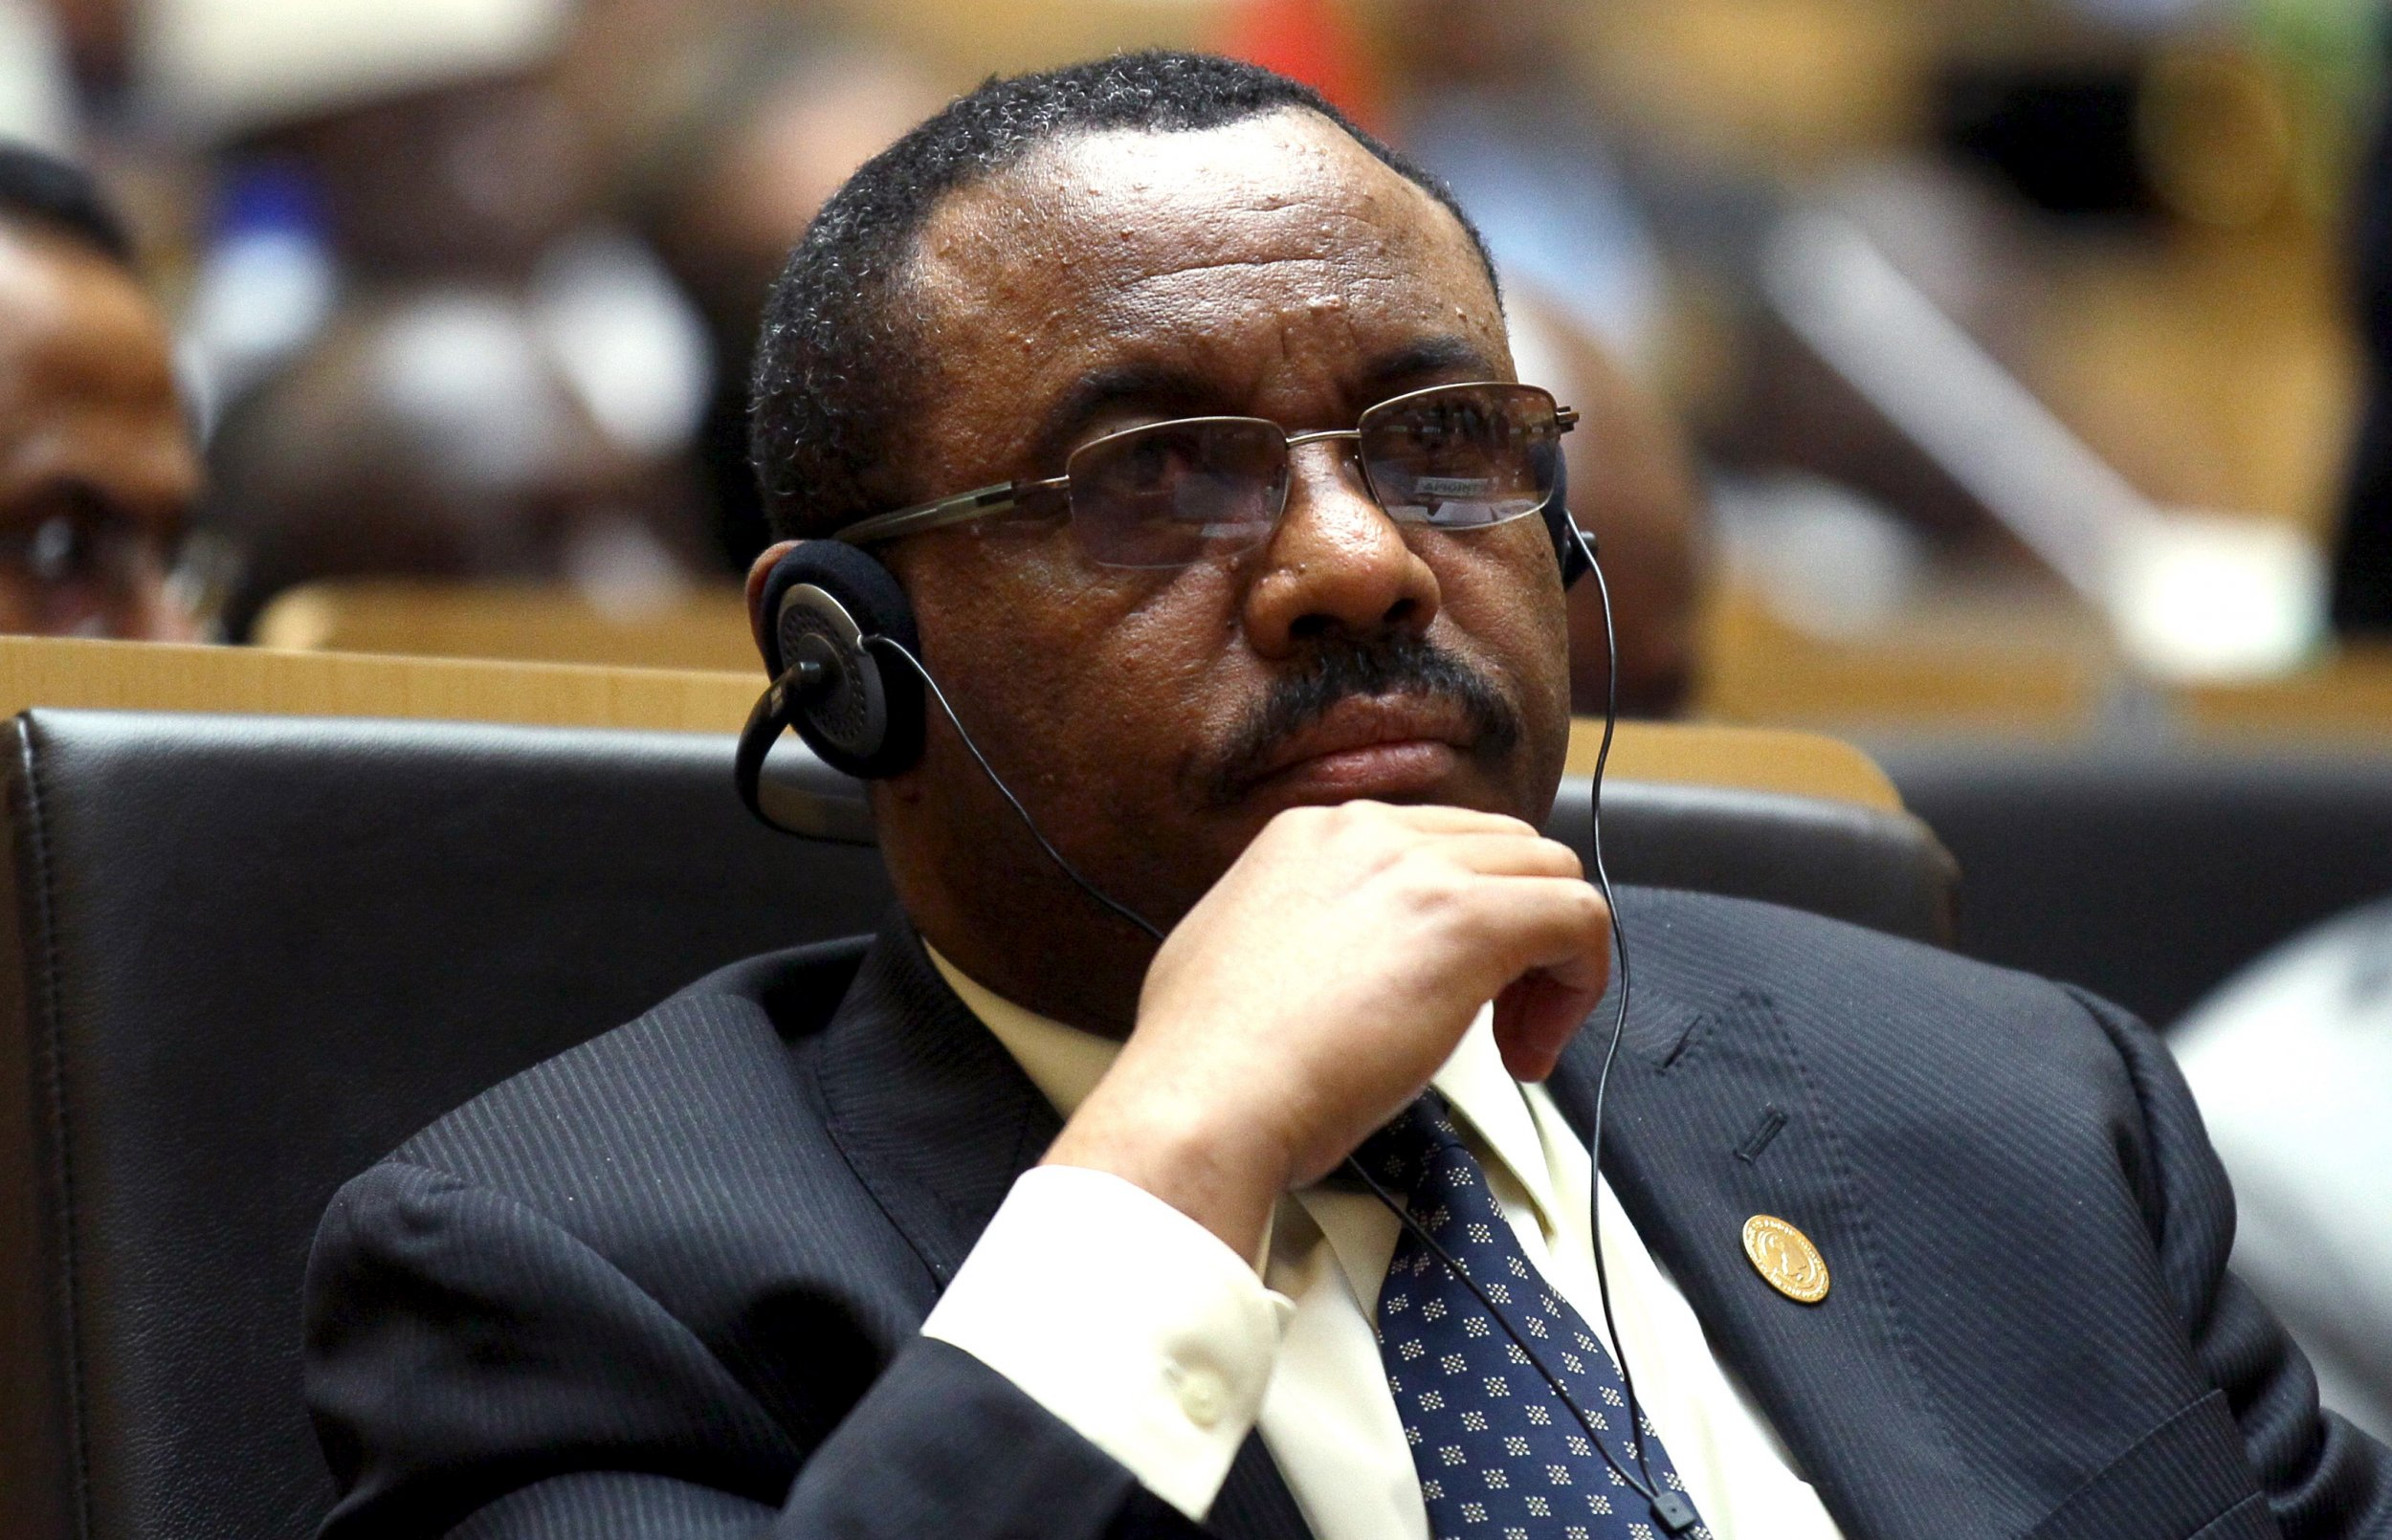 Ethiopian Prime Minister Hailemariam Desalegn attends the AU summit in Addis Ababa.